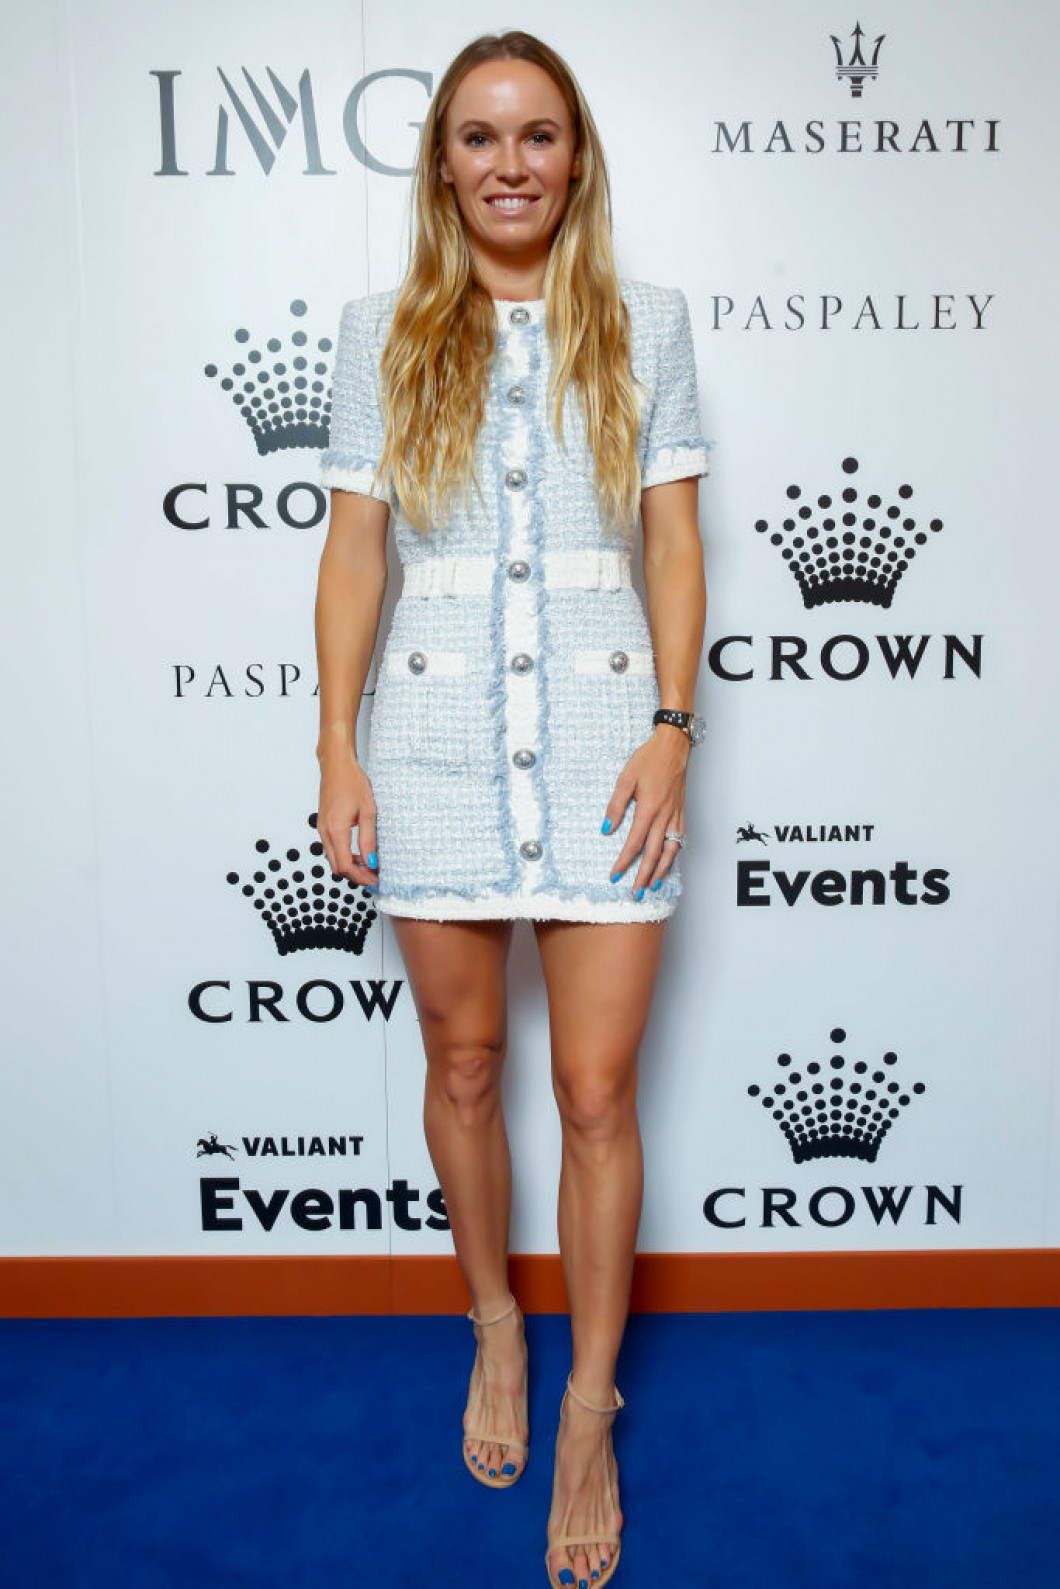 Crown IMG Tennis Party - Arrivals